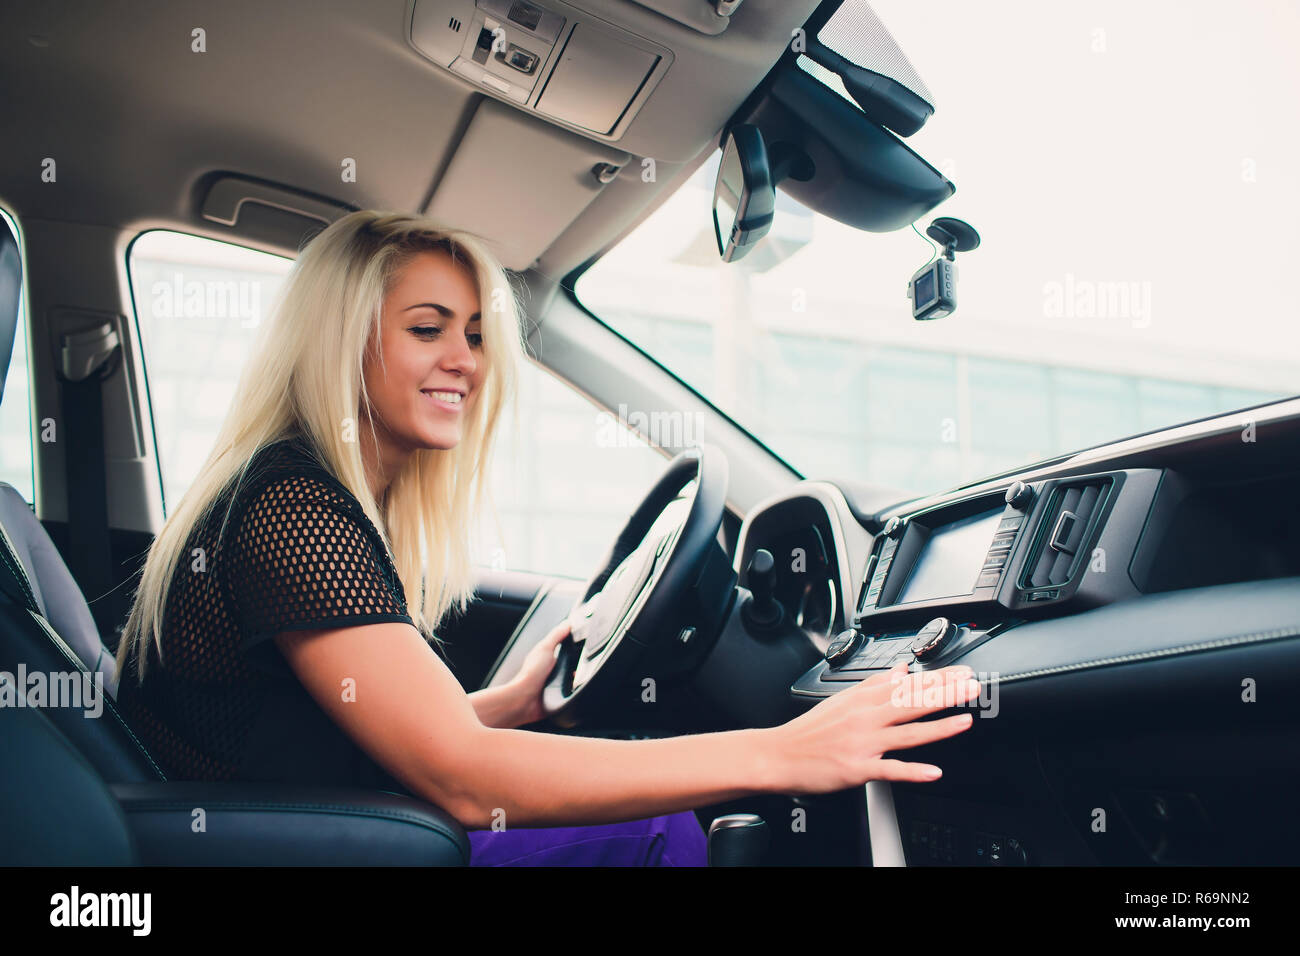 Happy smiling female rejoicing in new expensive purchase in auto showroom. Beautiful customer sitting on door of white folding top car. - Stock Image